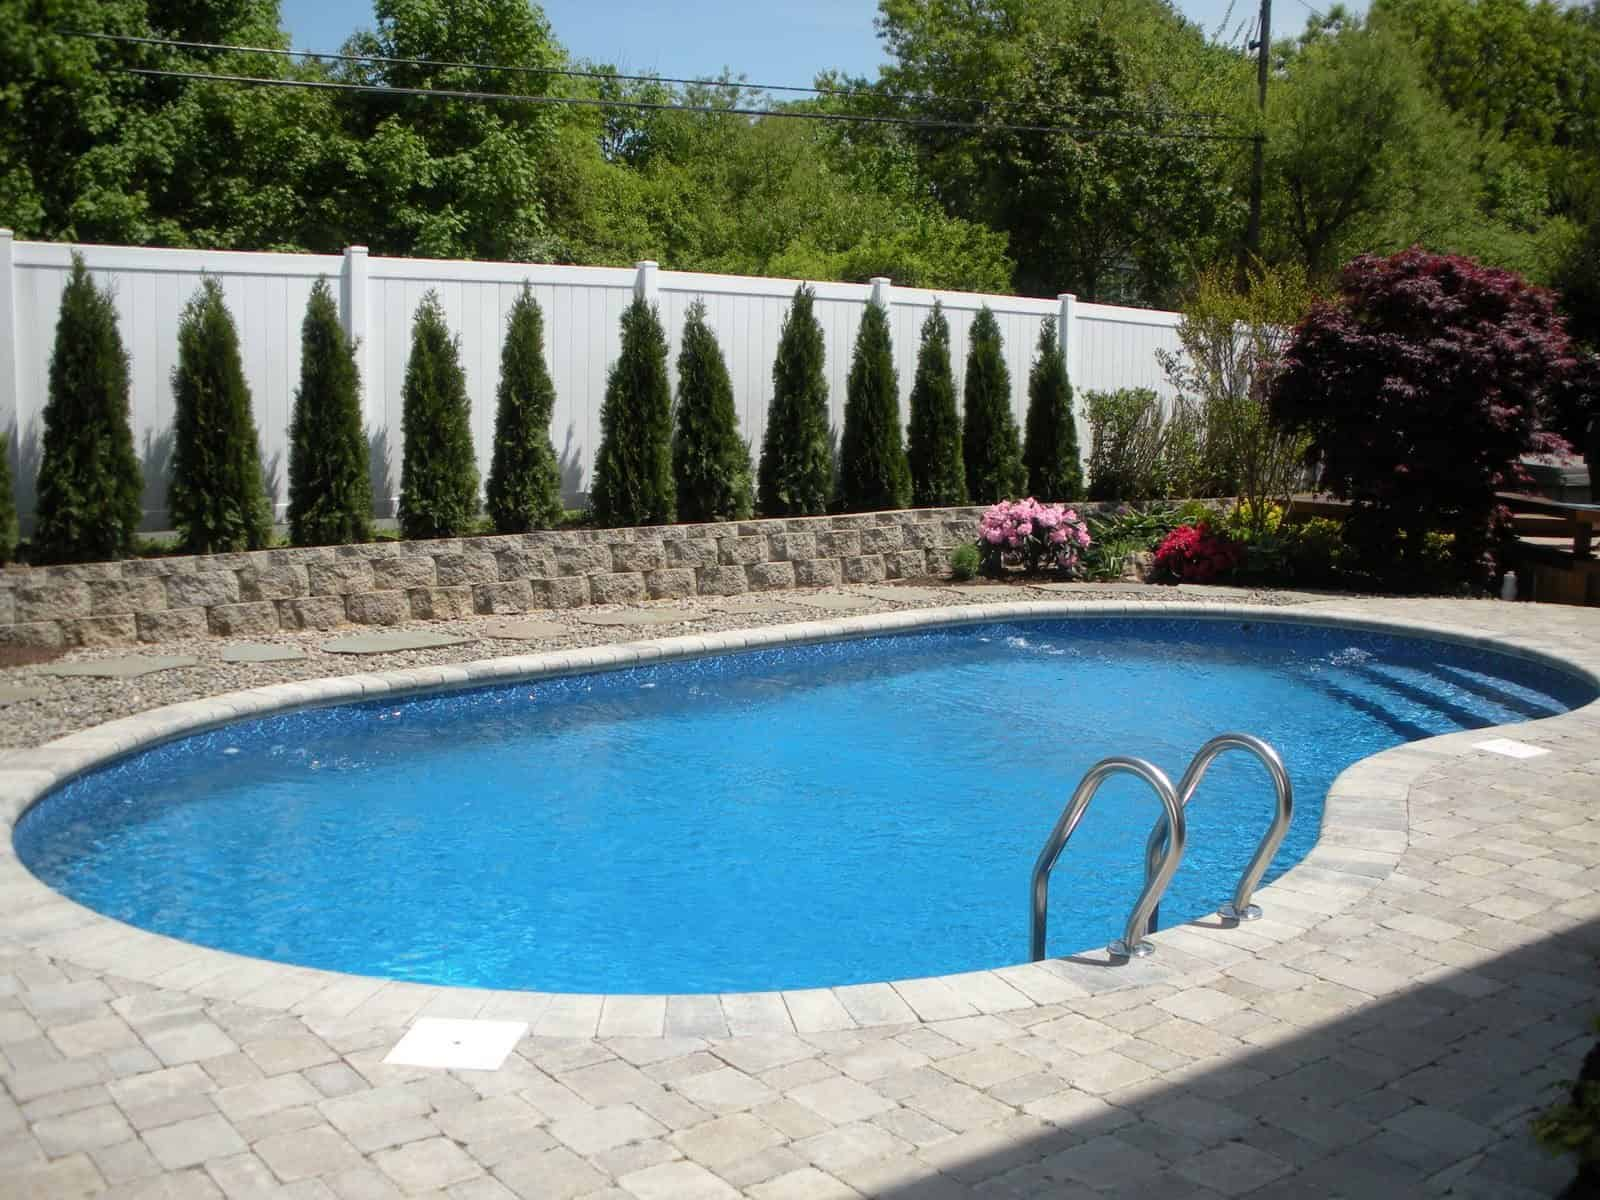 16' x 32' free form Vinyl Liner Pool - Melville, Long Island NY